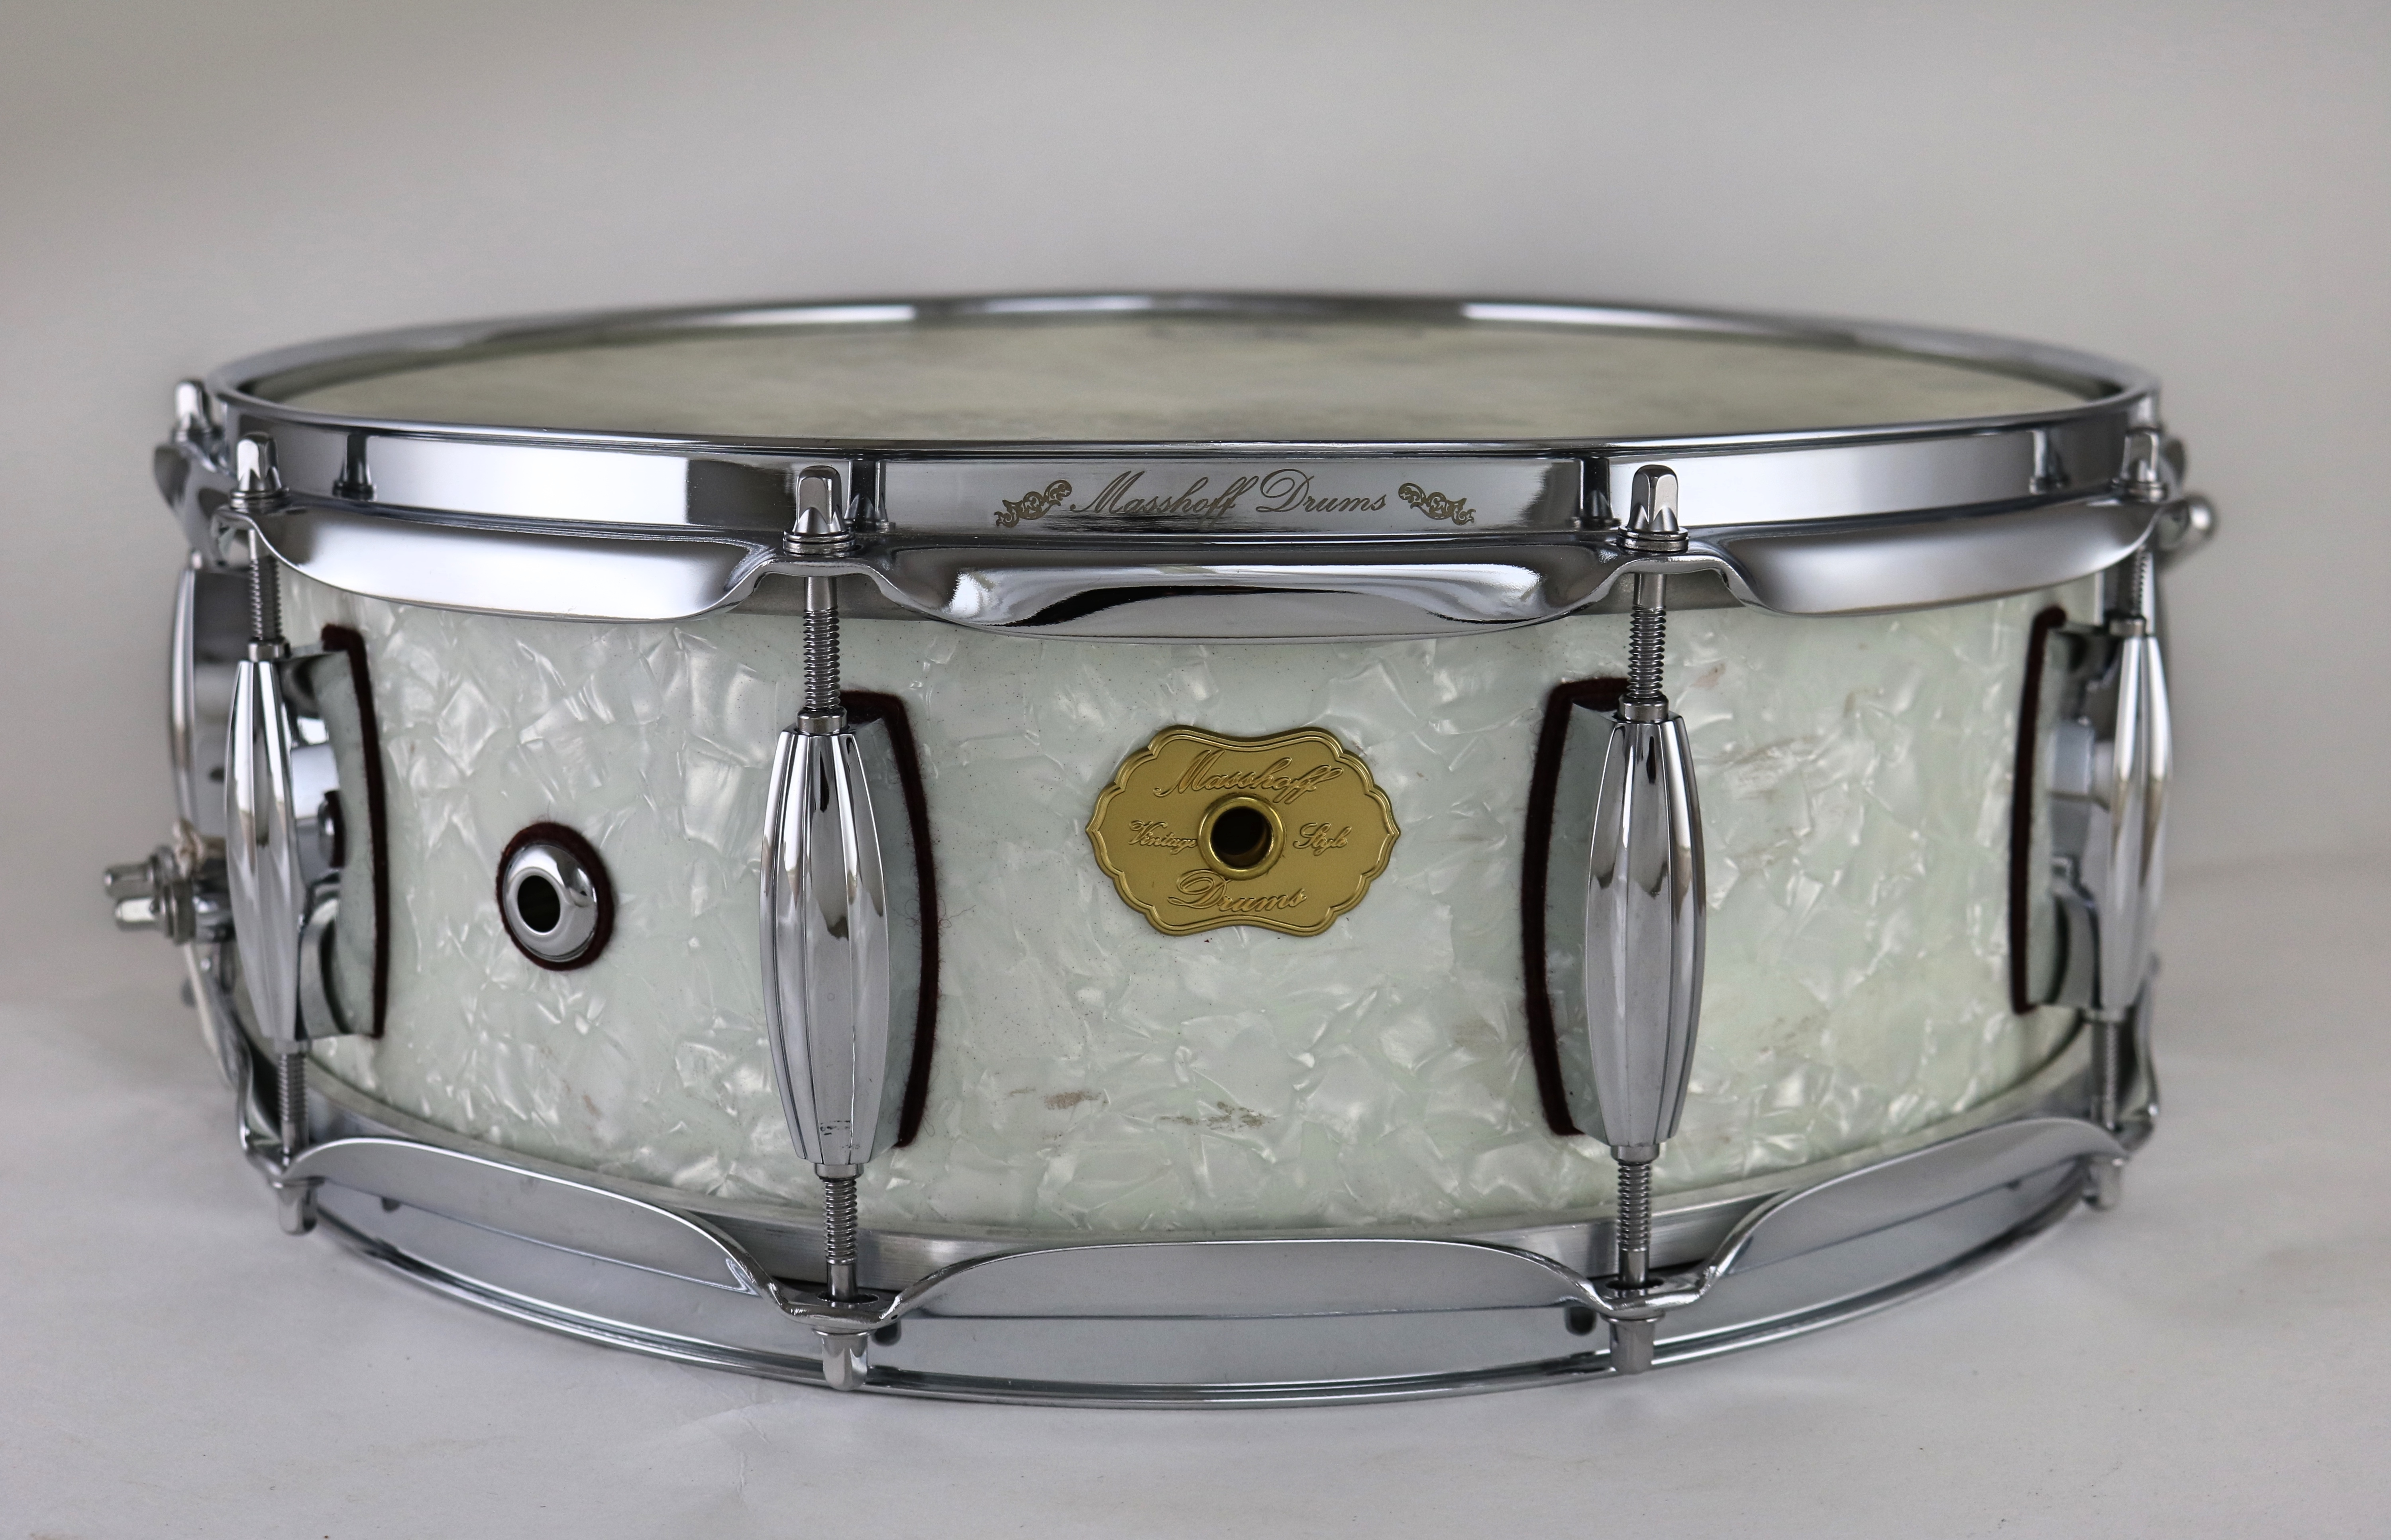 Masshoff Drums with Diamonds,Oysters & Pearls [configurator]